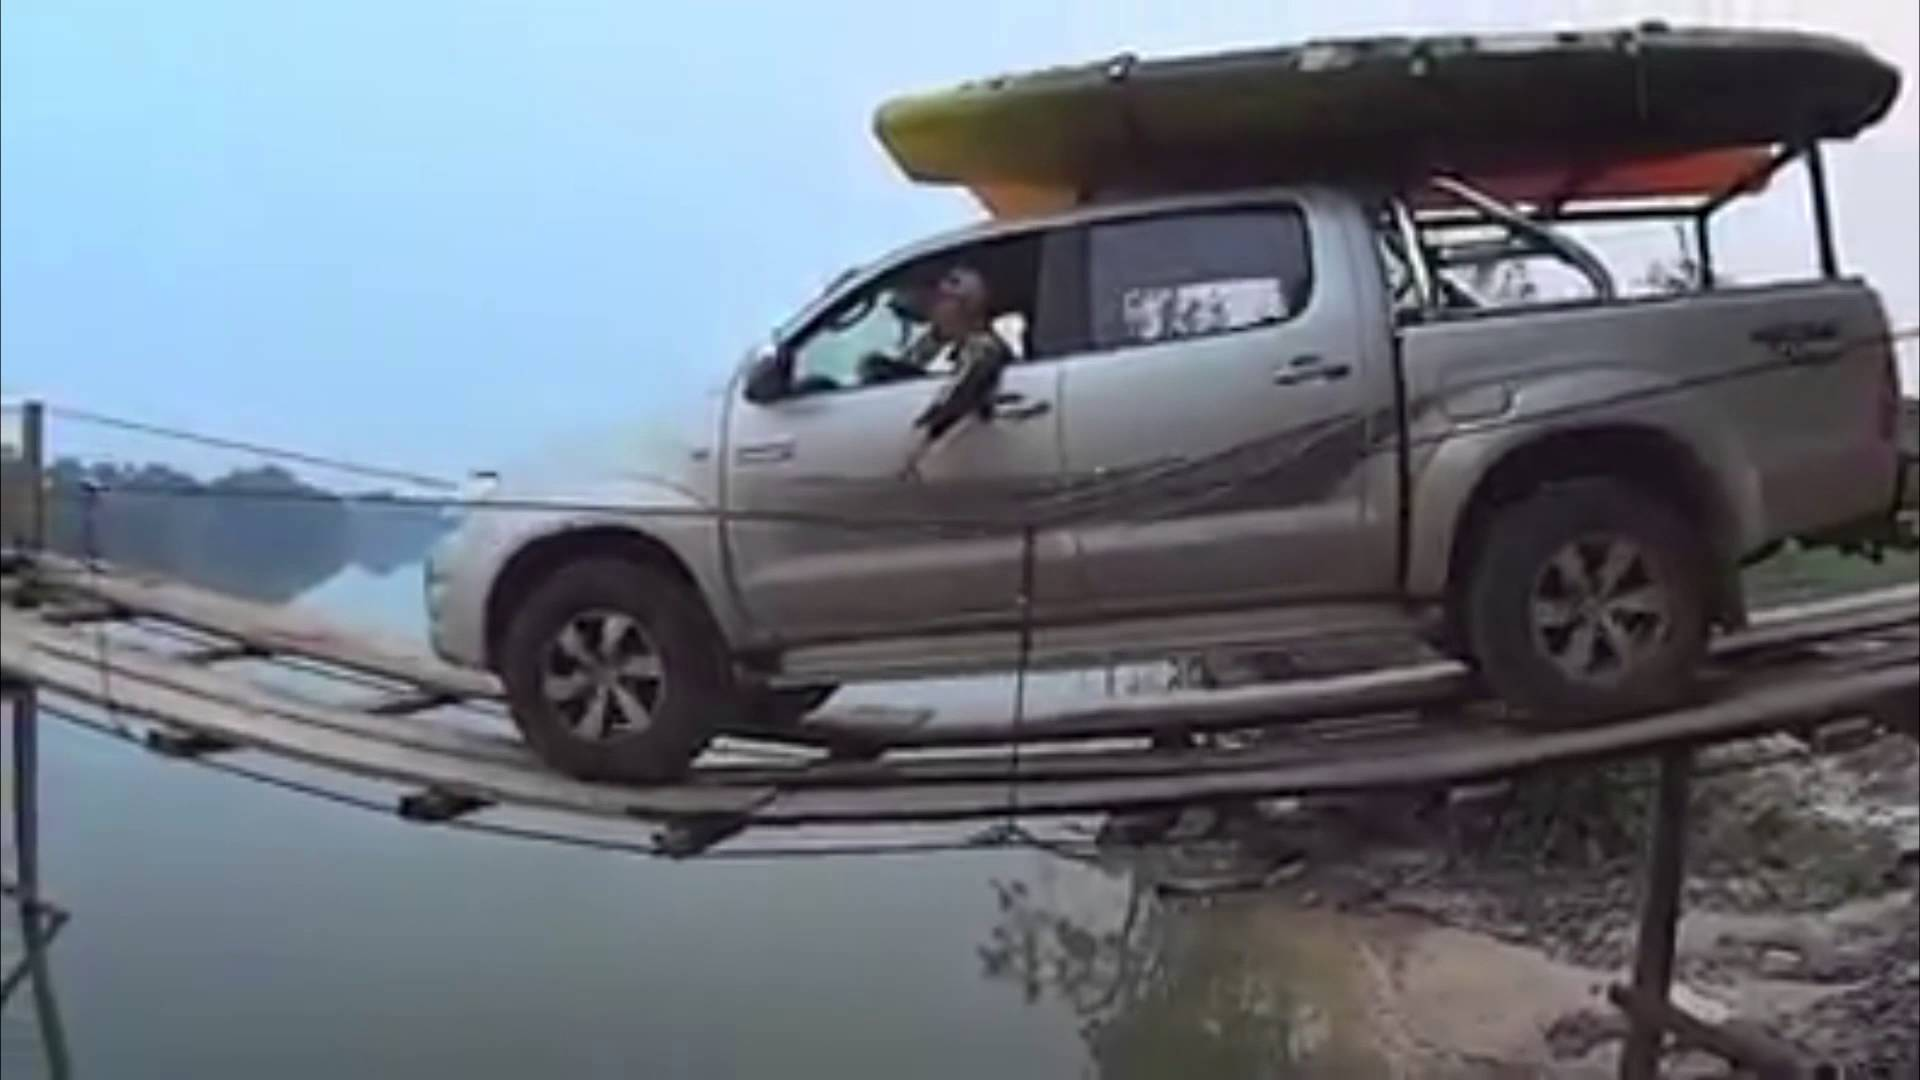 Boat Towing Pickup Truck Makes a Nerve Wracking Trip Across Water on Tiny  Wooden Bridge